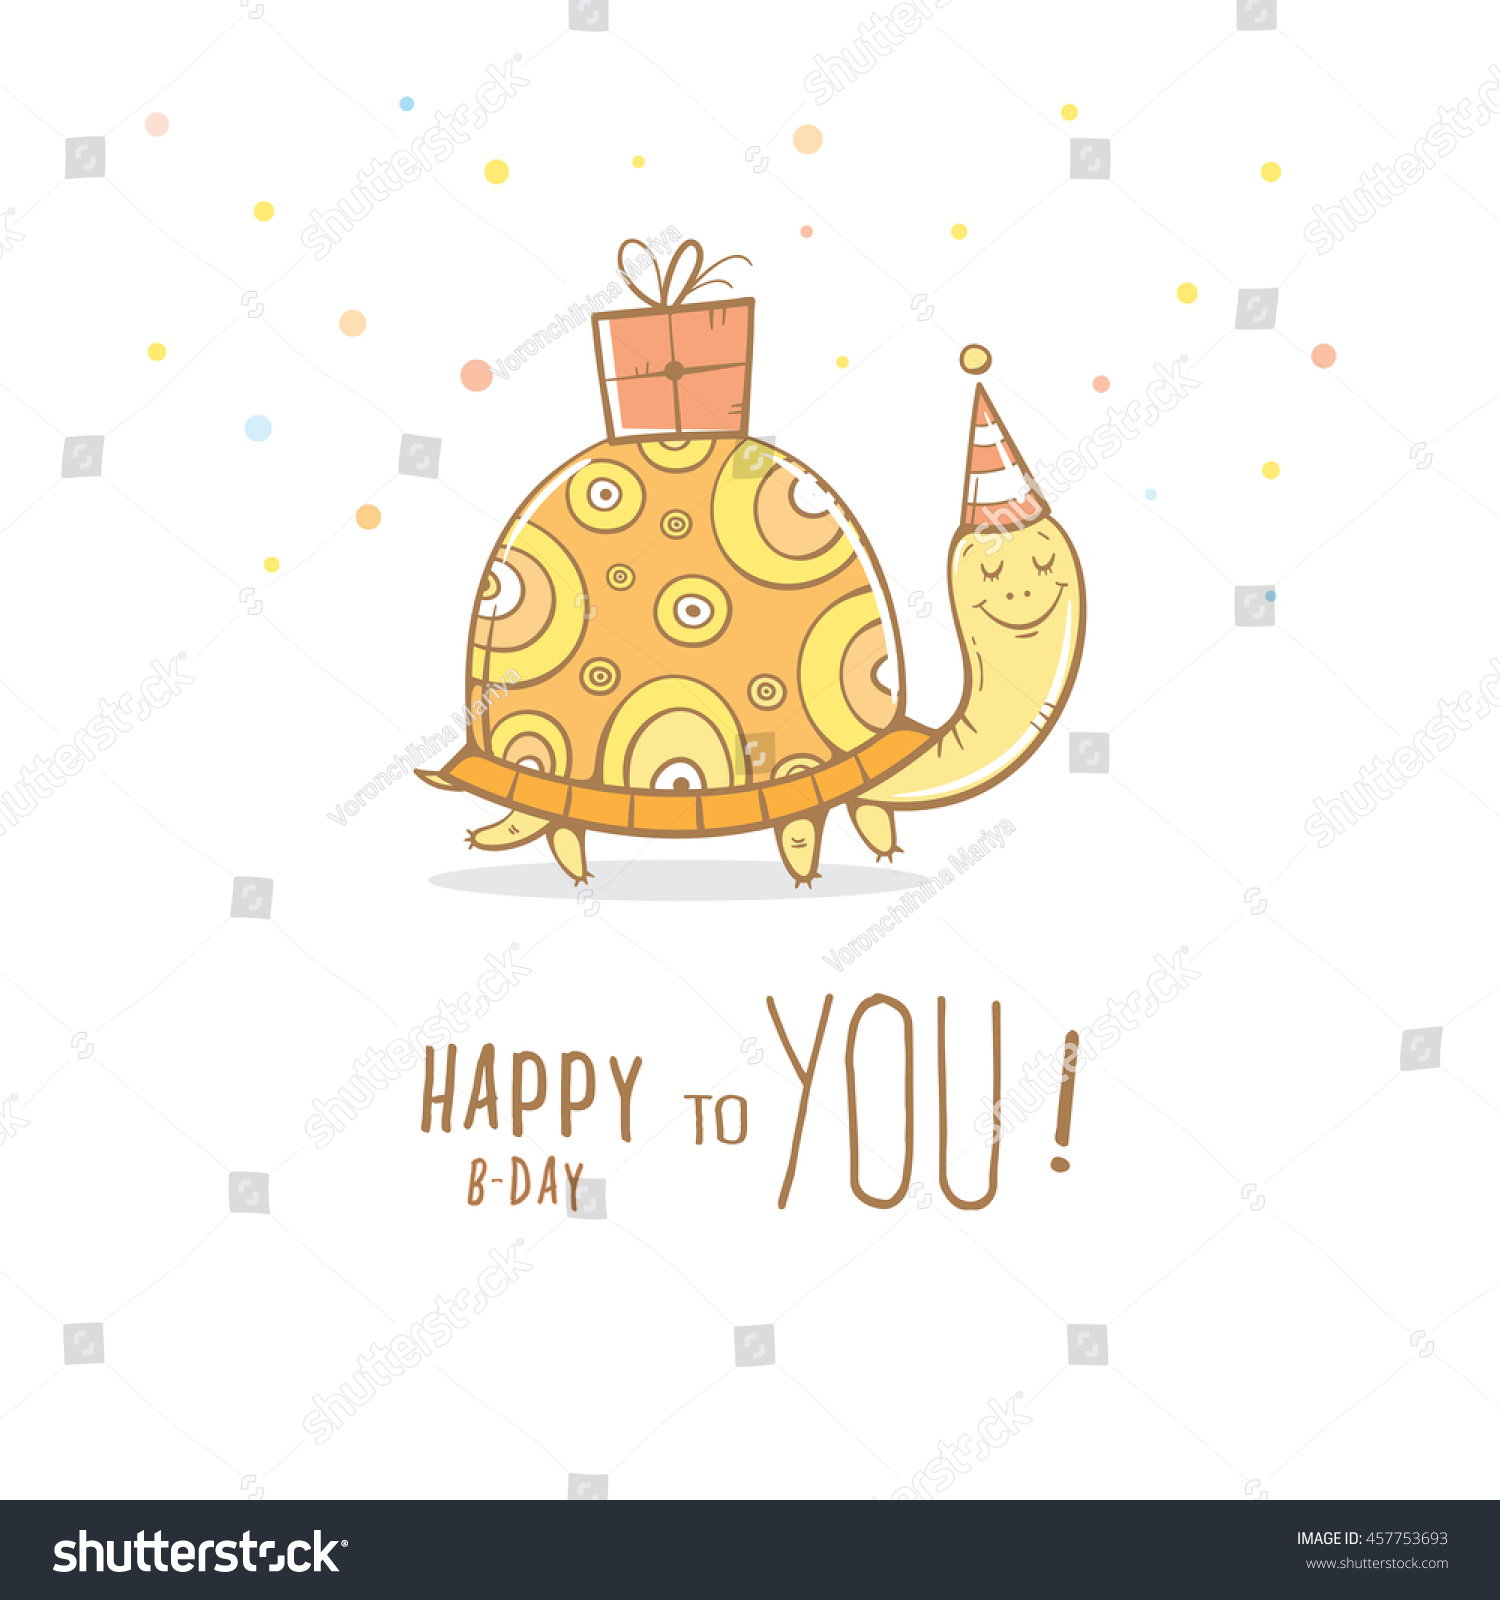 Turtle Birthday Card Image collections Free Birthday Cards